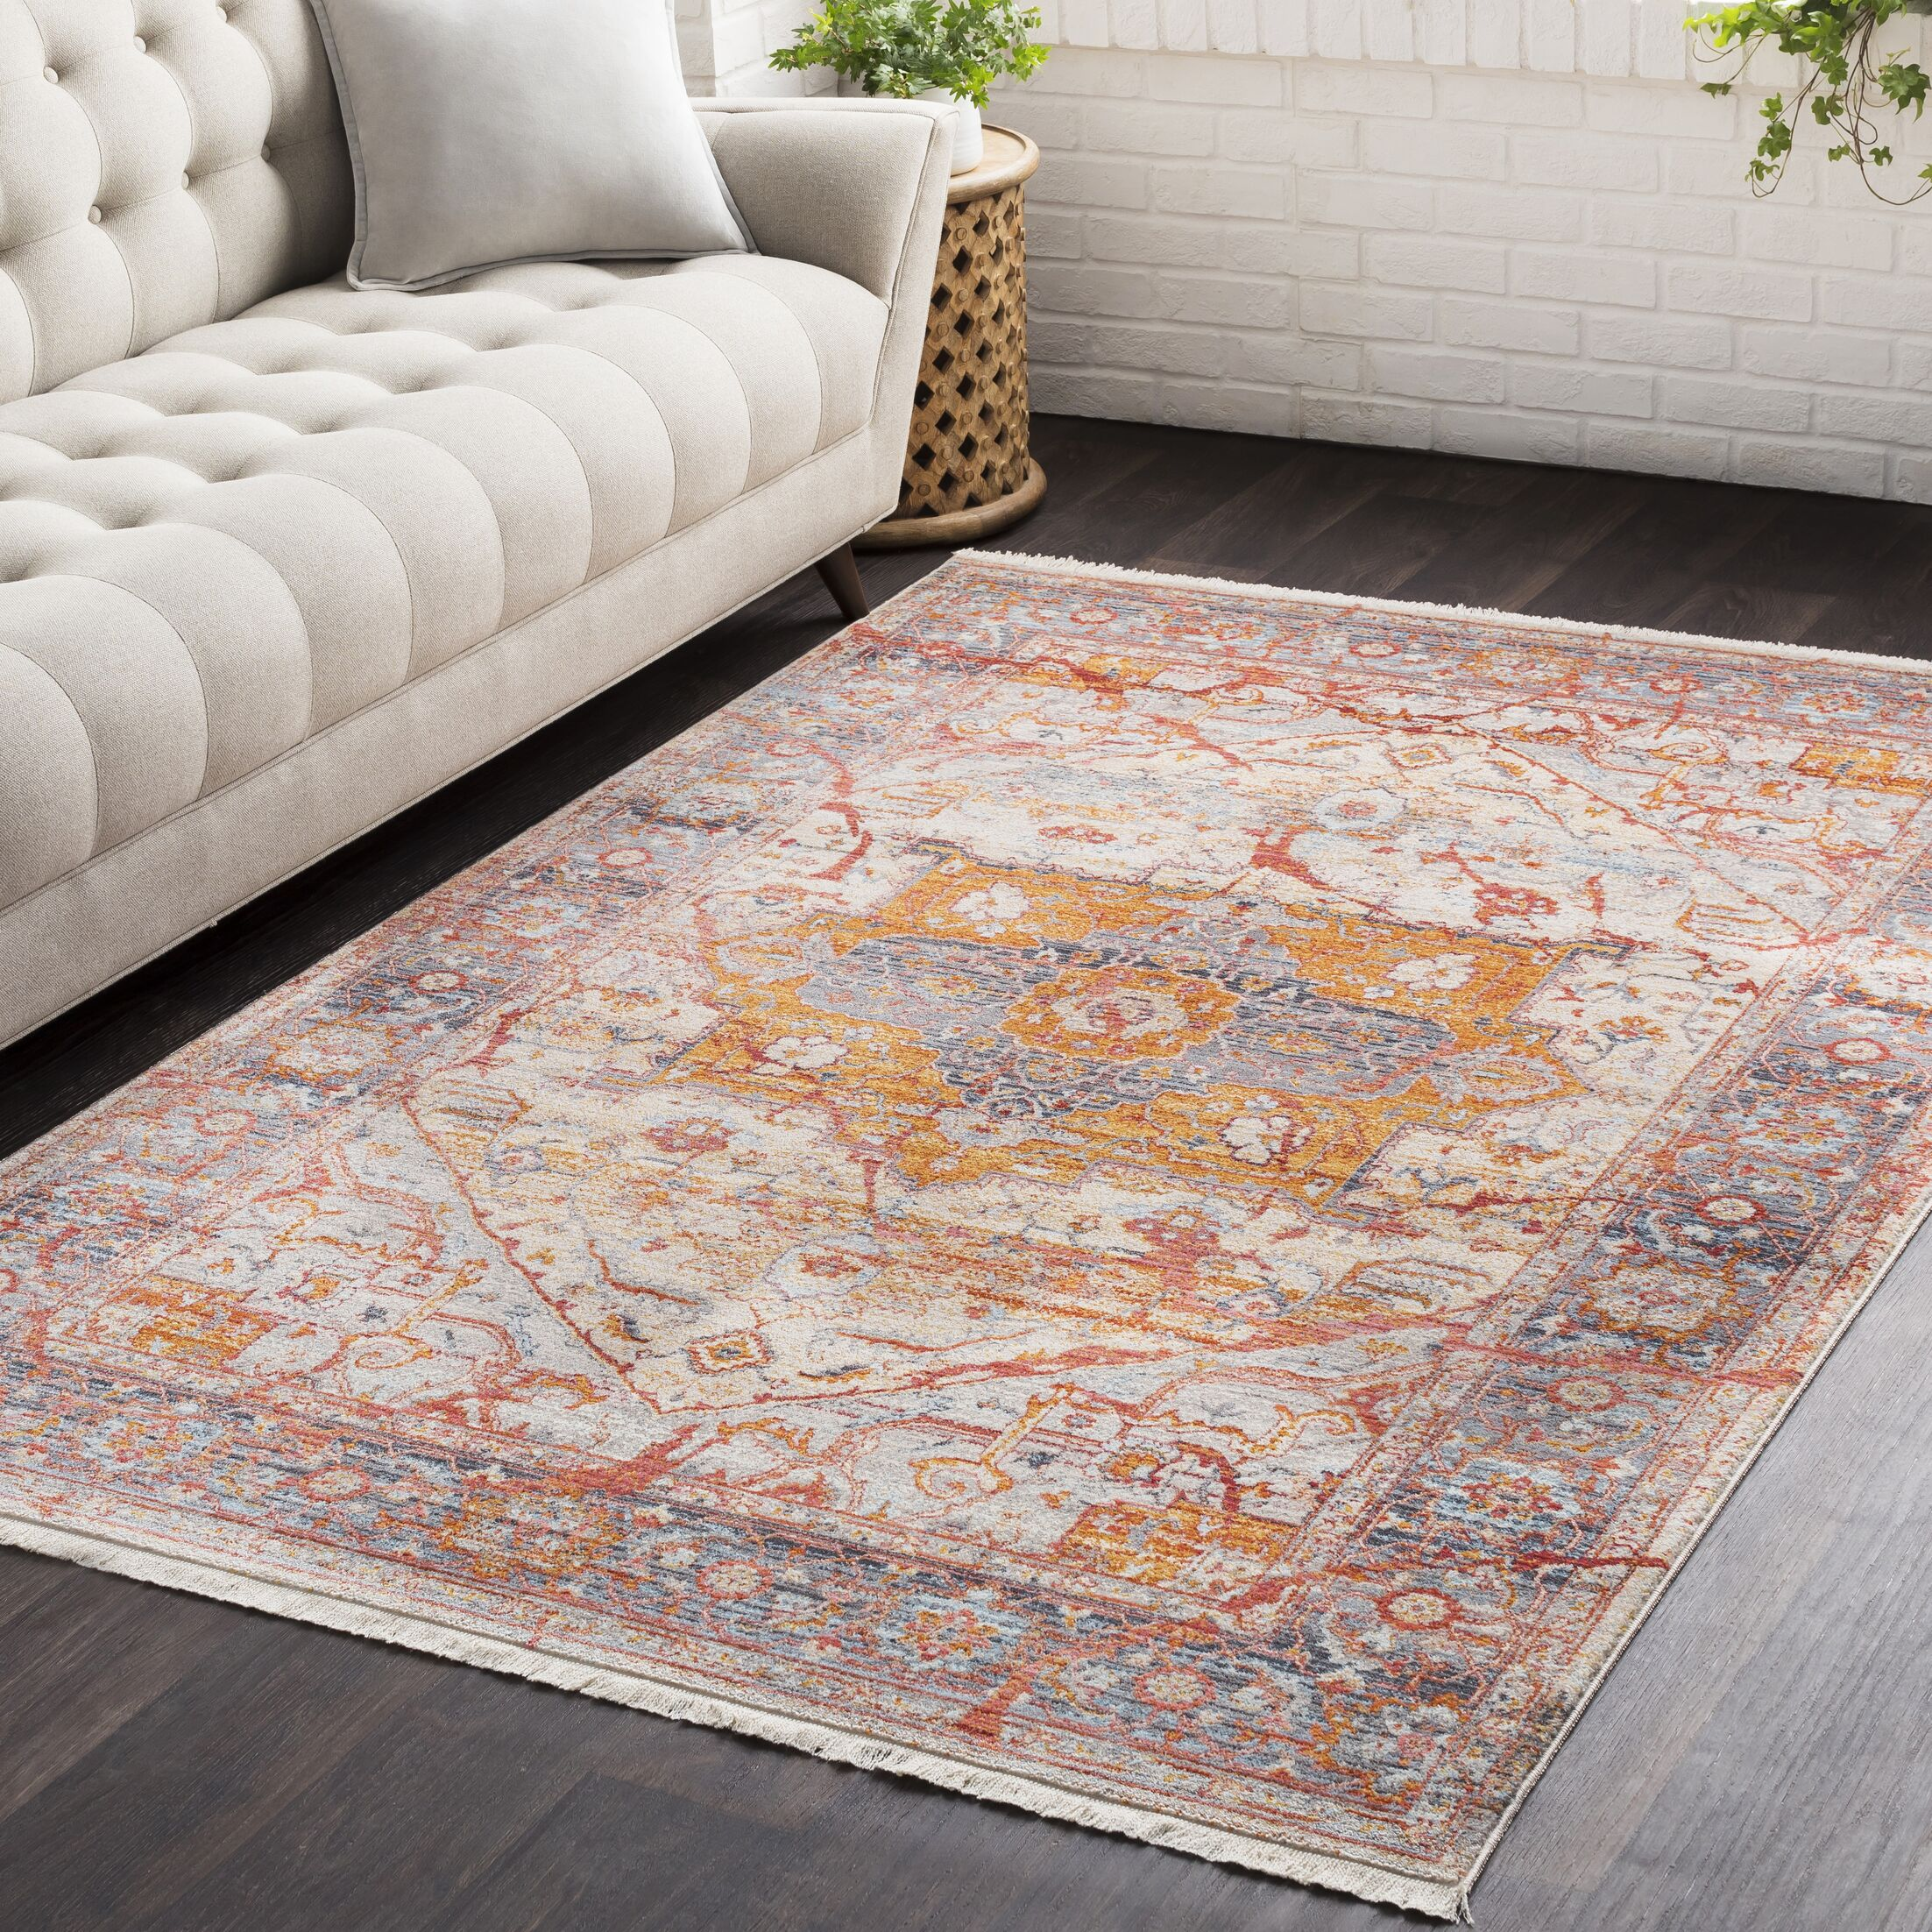 Mendelsohn Oriental Vintage Persian Traditional Red/Orange Area Rug Rug Size: Rectangle 3'11